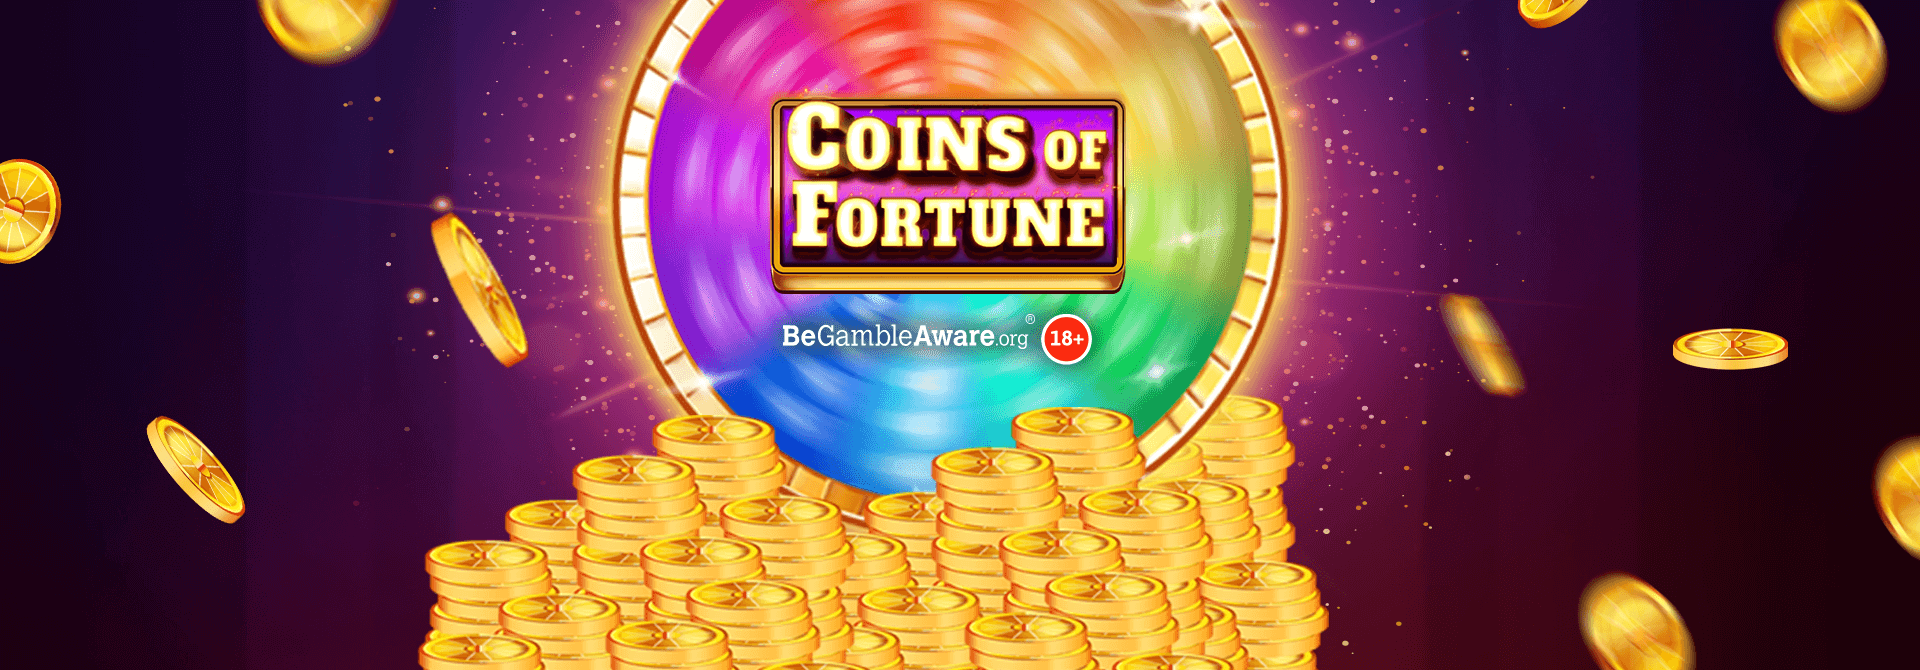 It's raining Coins of Fortune on the Mr Spin reels!